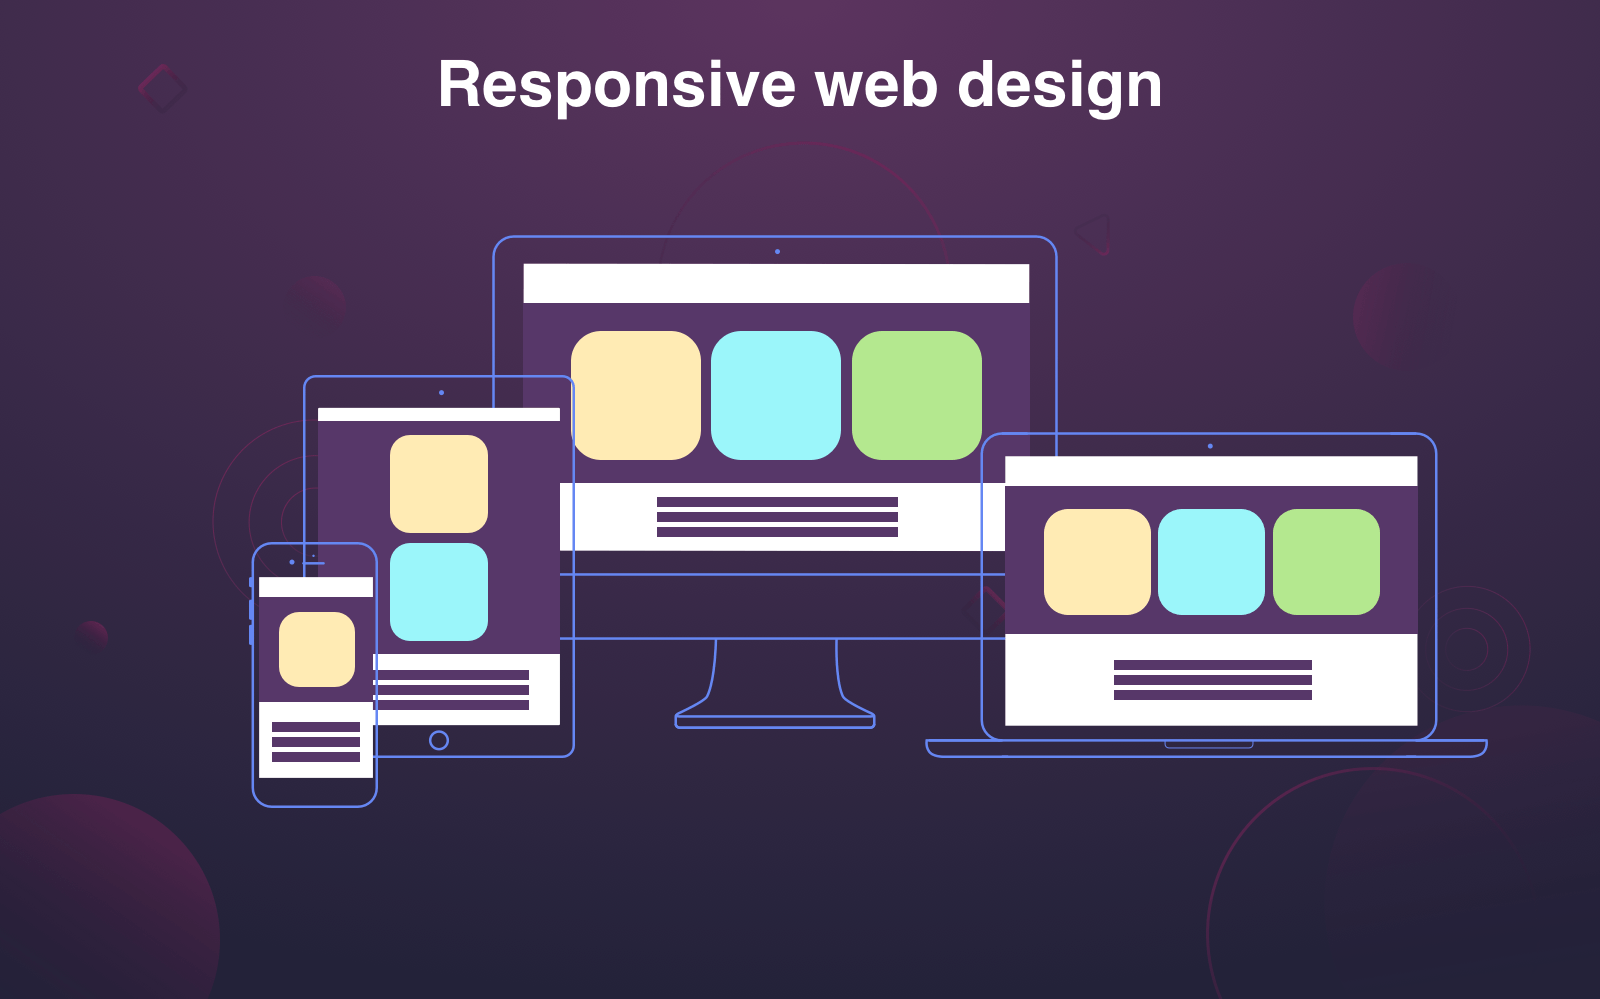 why use responsive web design